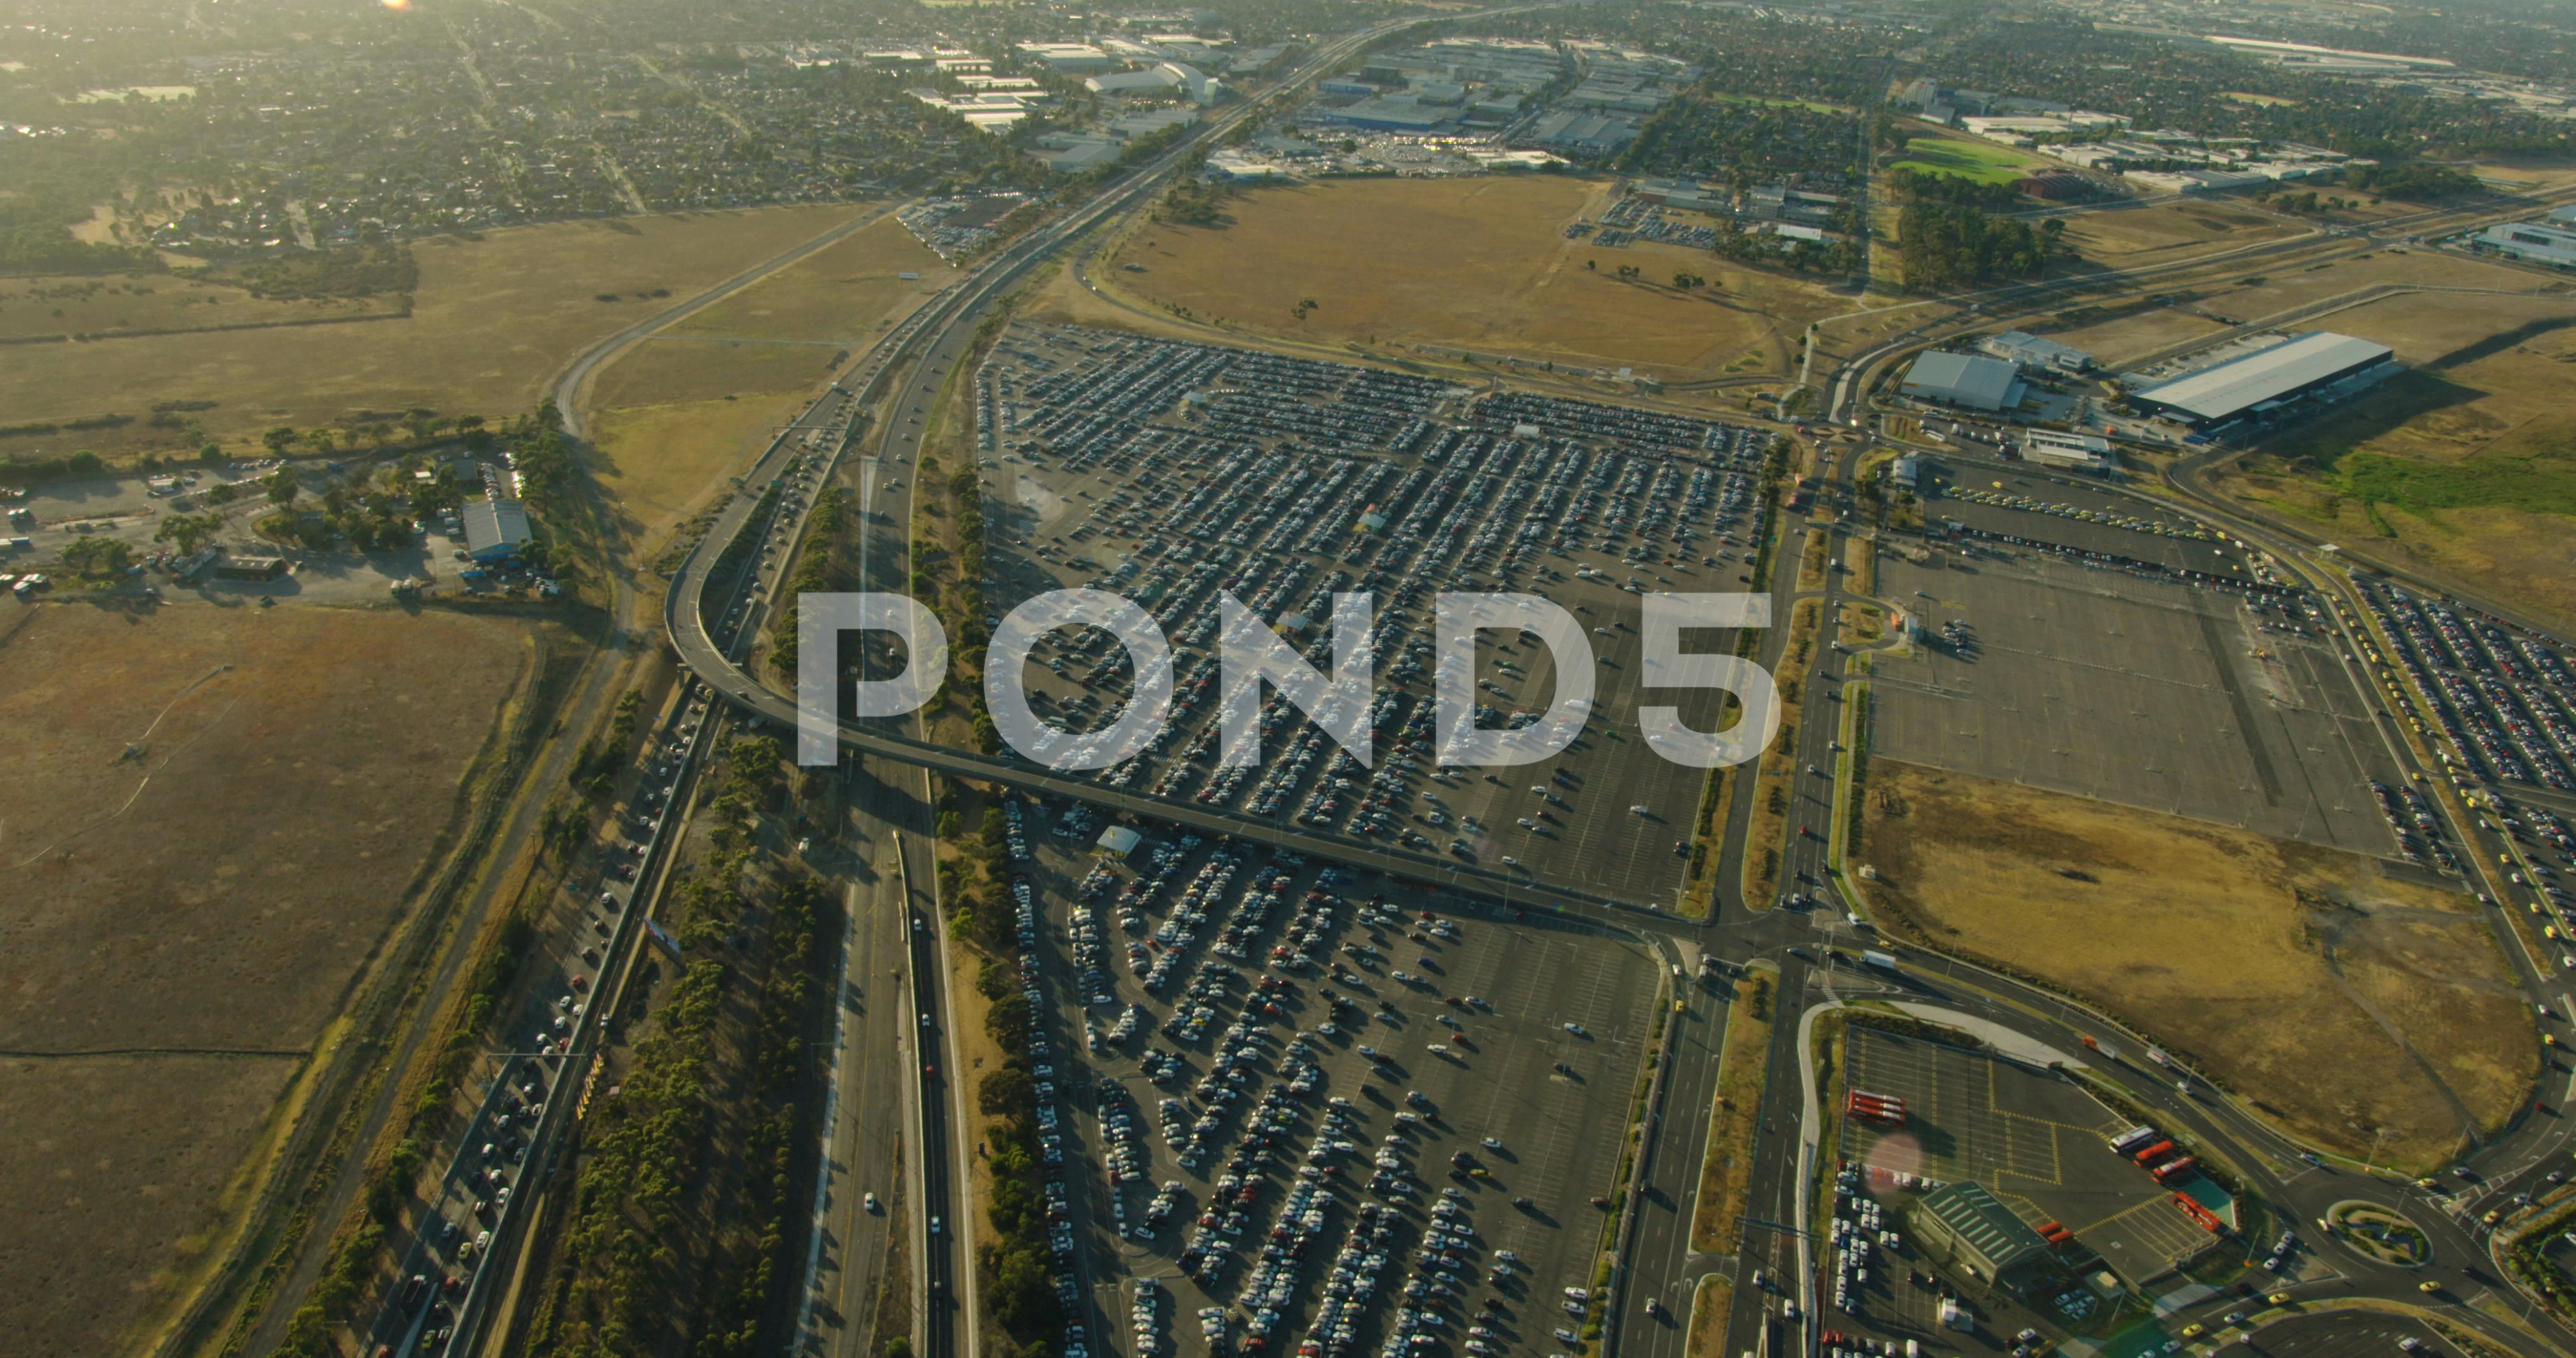 HD Melbourne Airport Parking